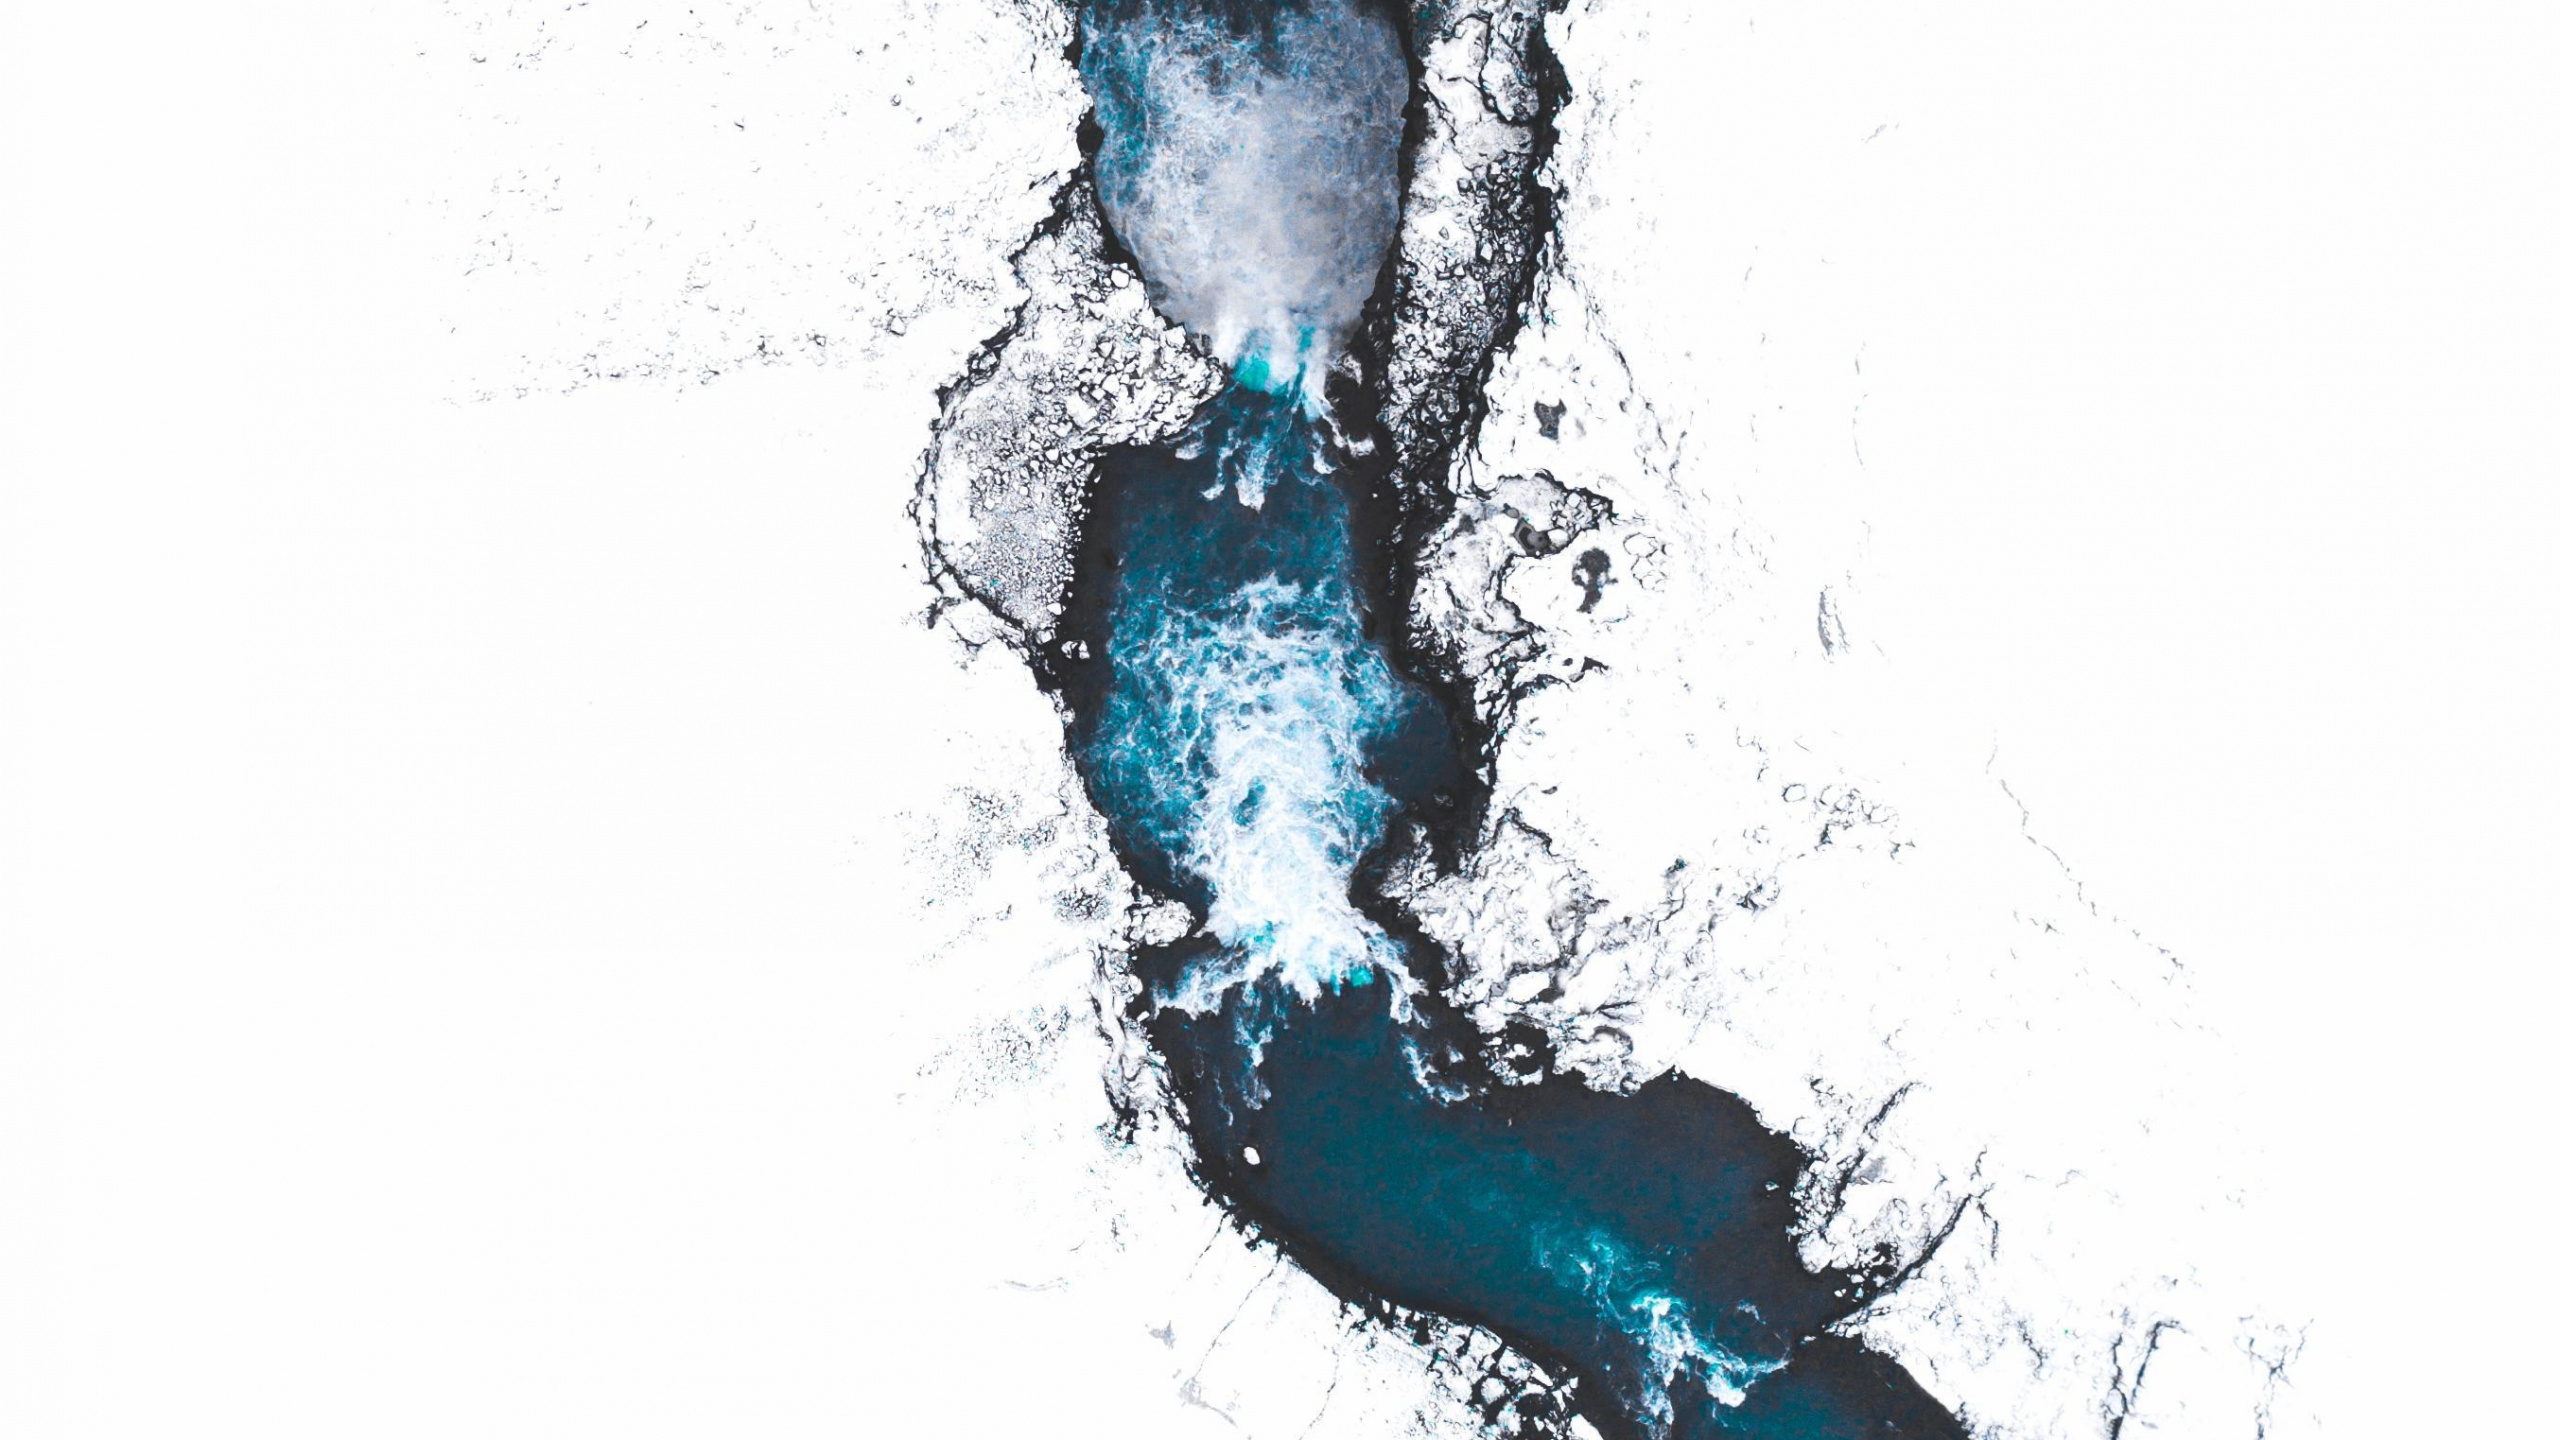 General 2560x1440 Iceland aerial river snow nature landscape water ice